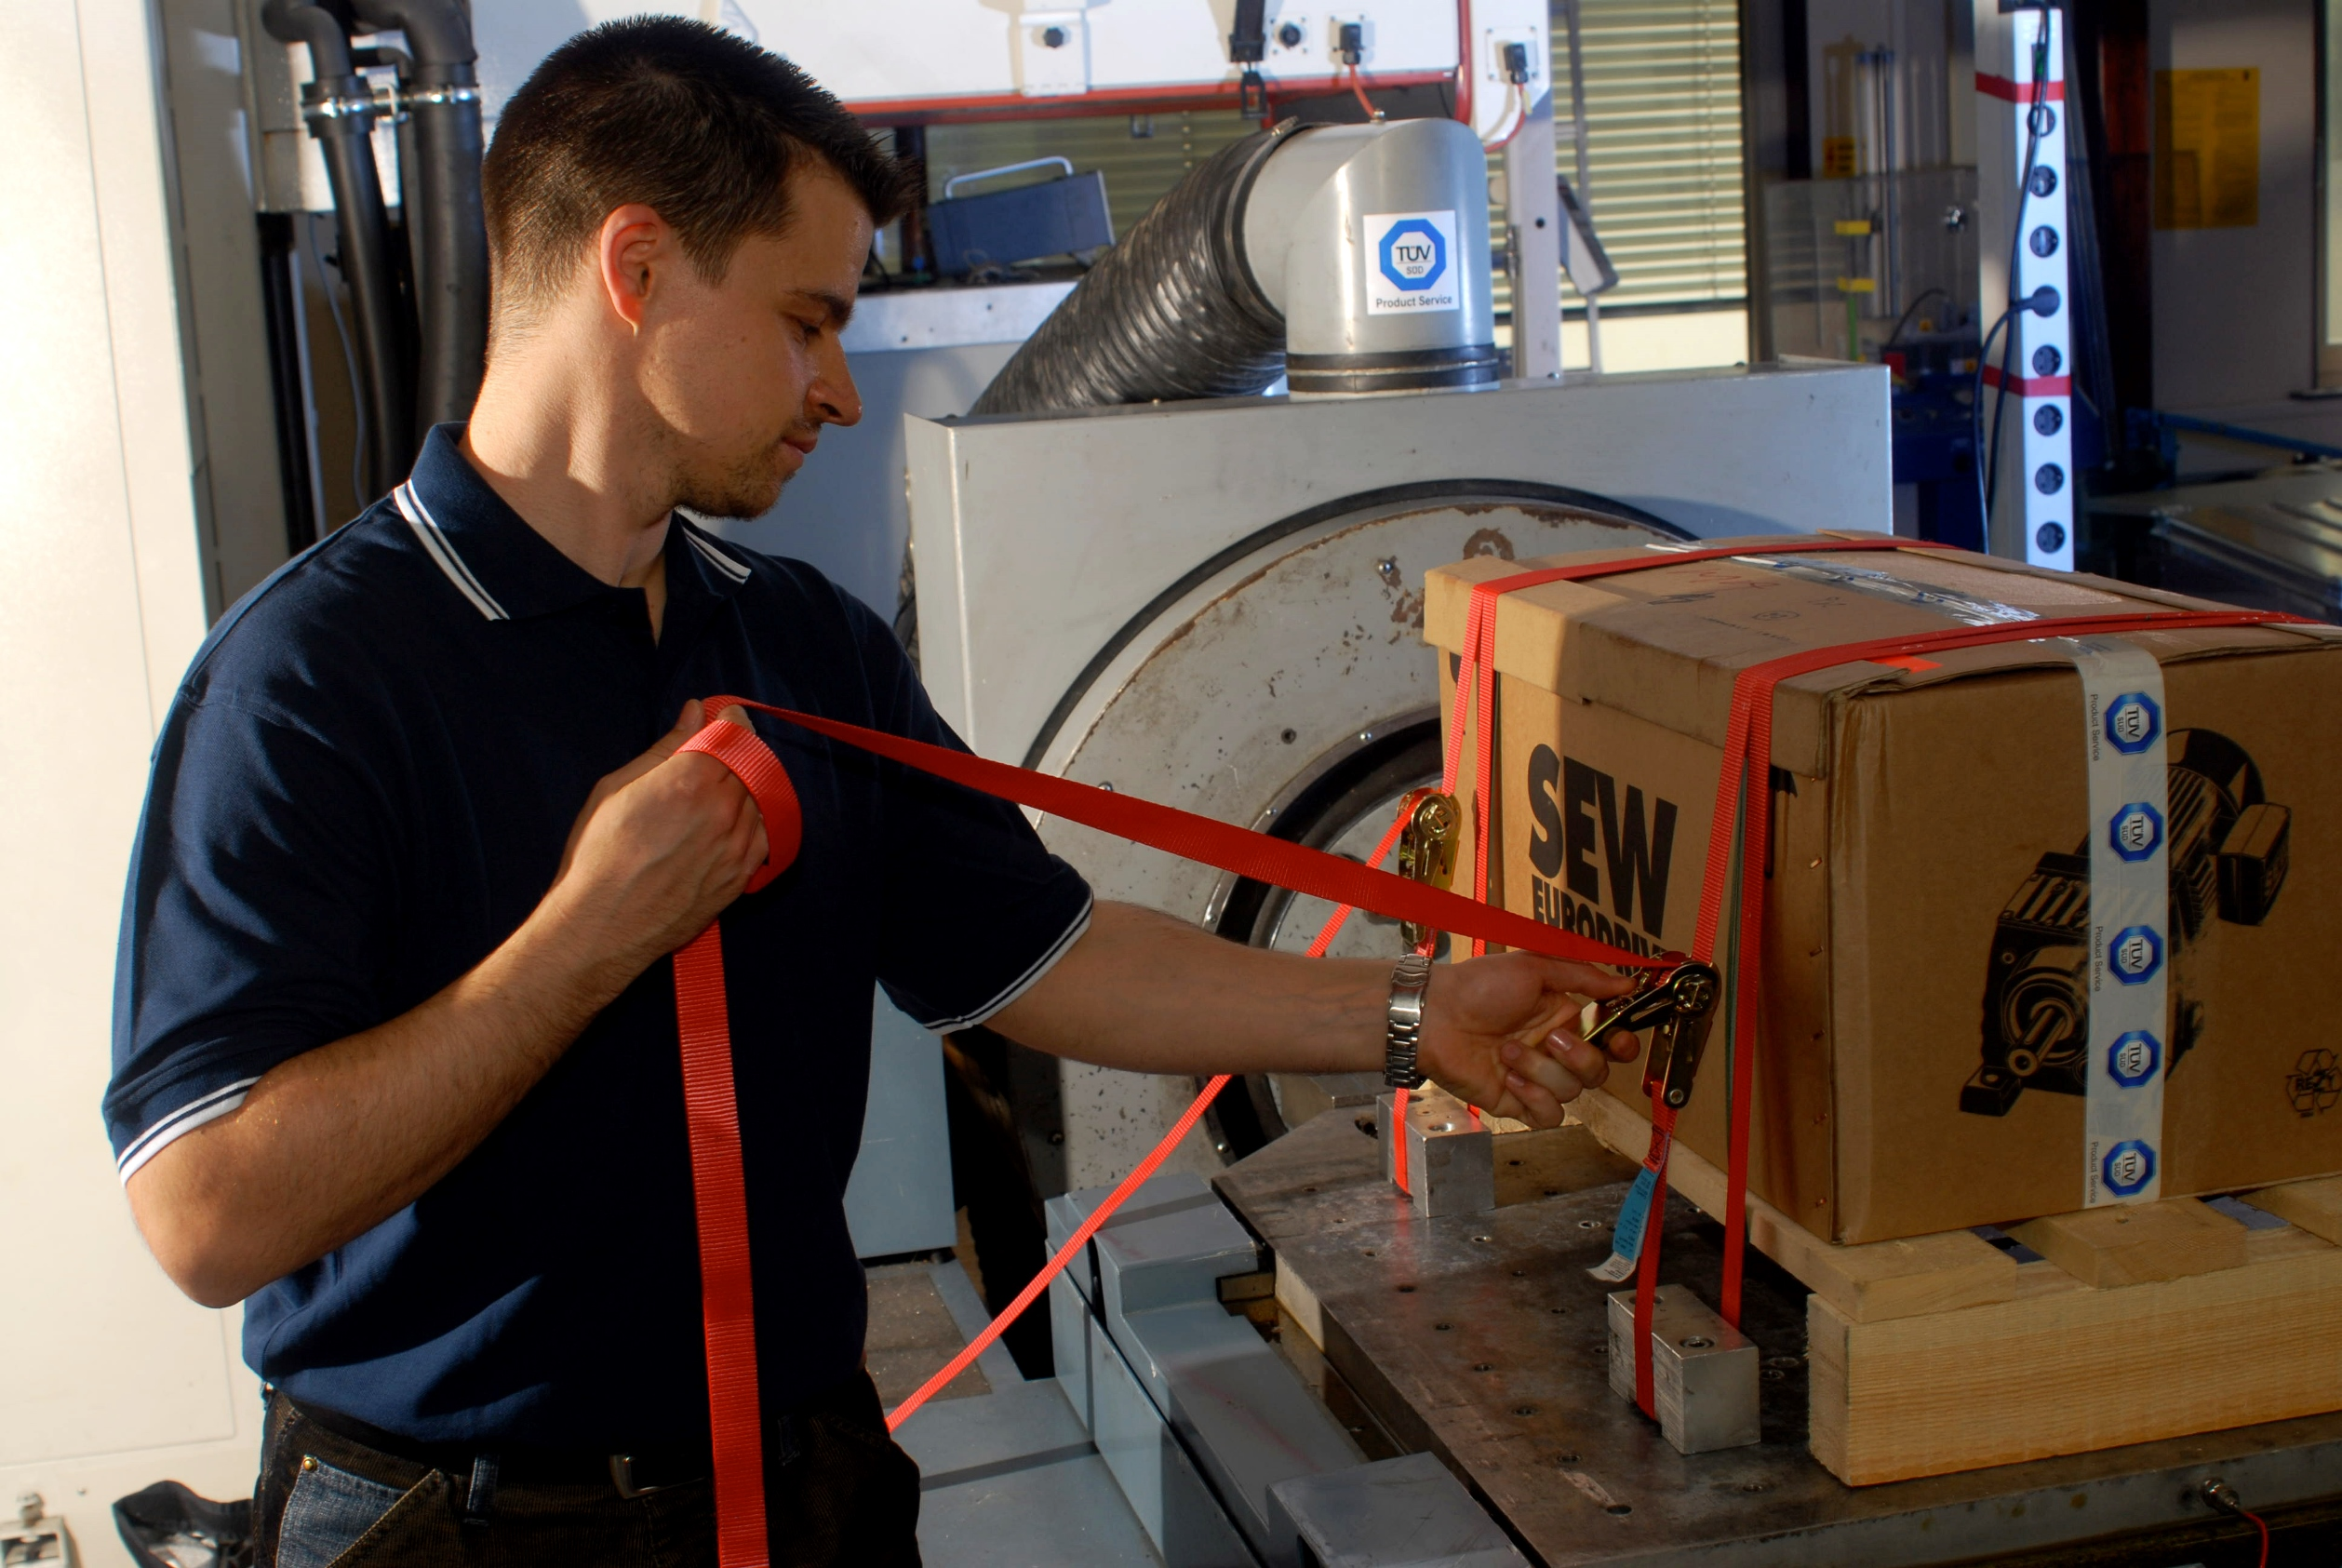 Vibration testing of packaging